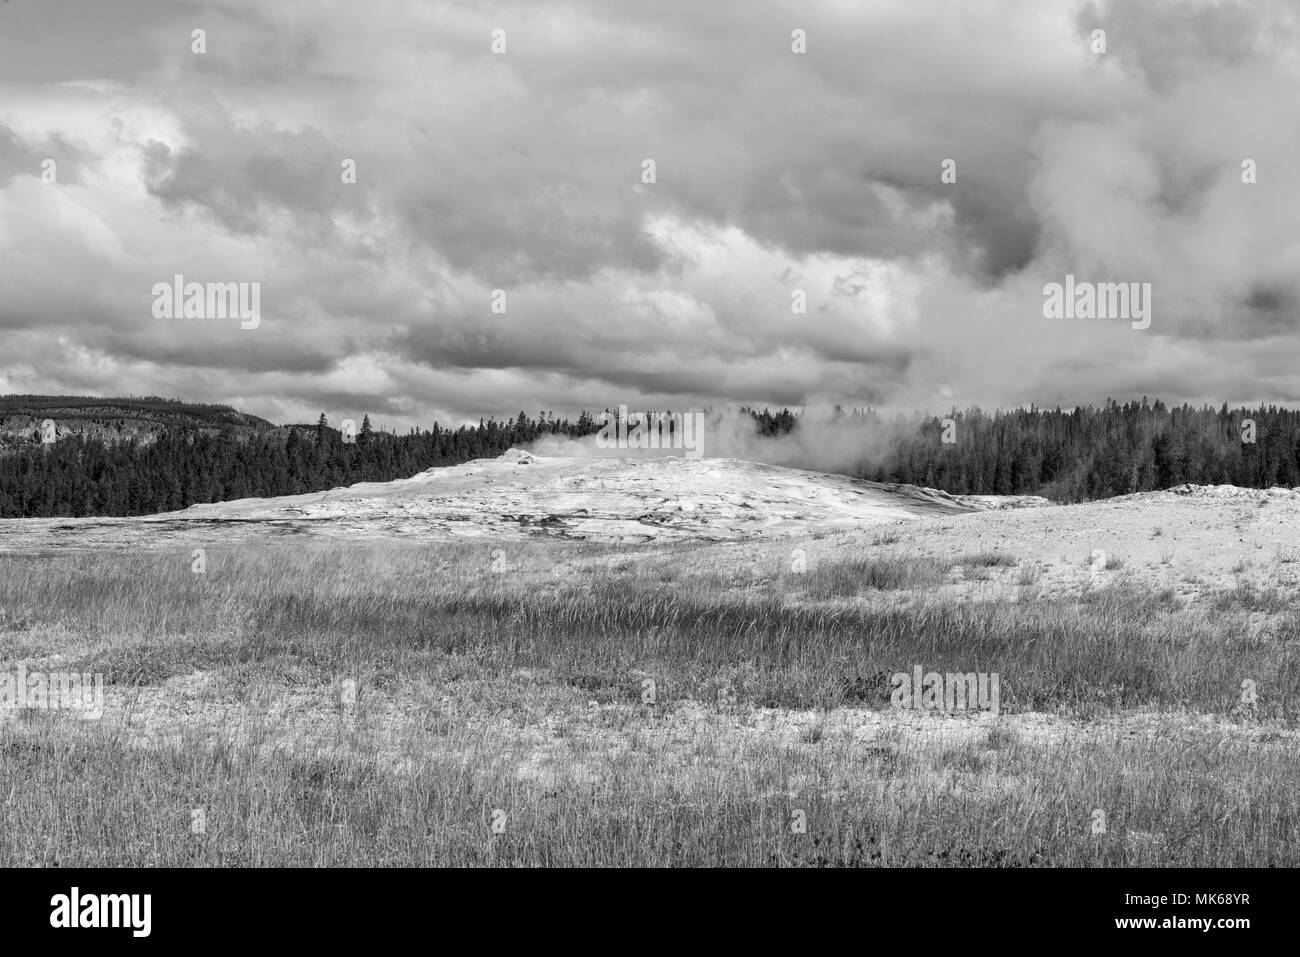 Geyser mound in middle of field steaming, under cloudy sky. Black and white image. - Stock Image